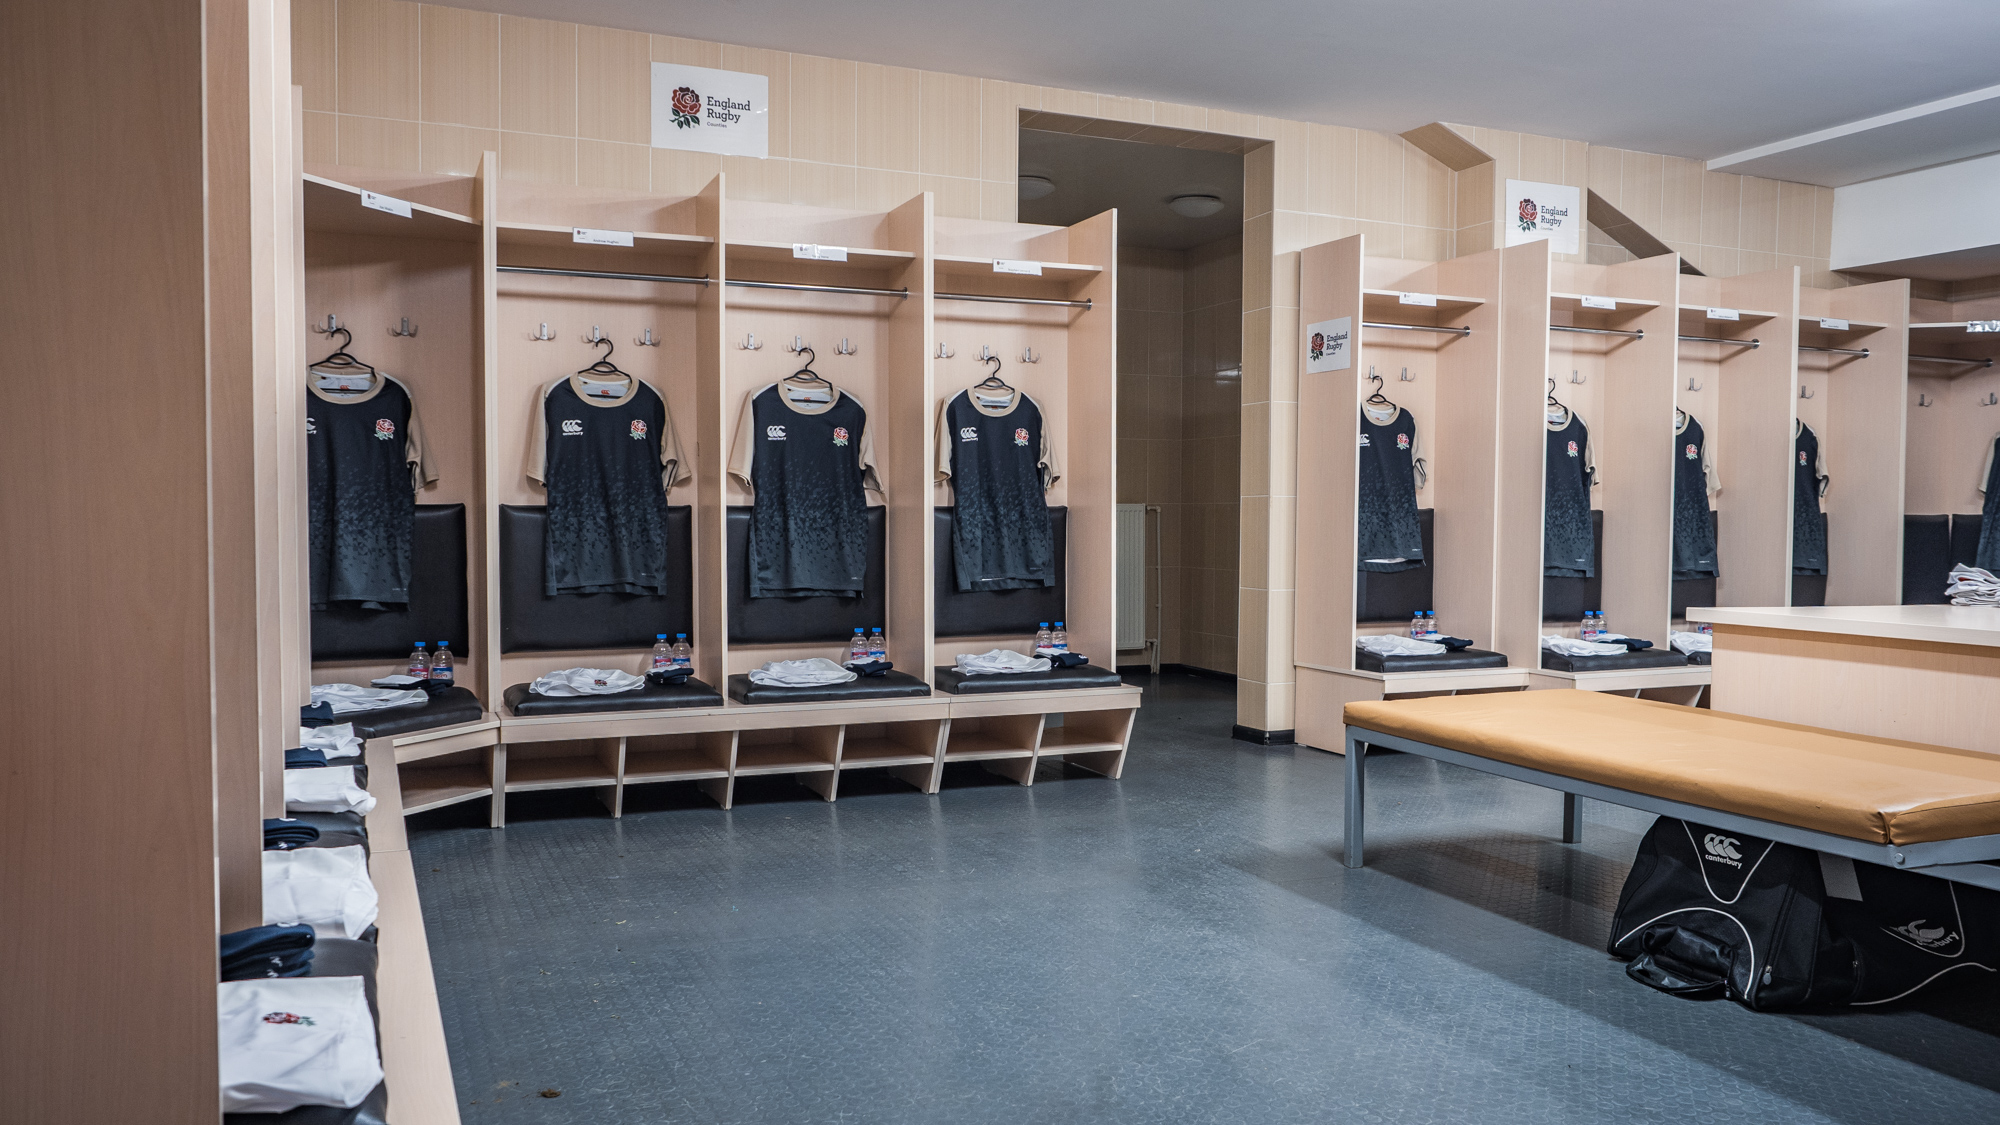 Changing room before the first match